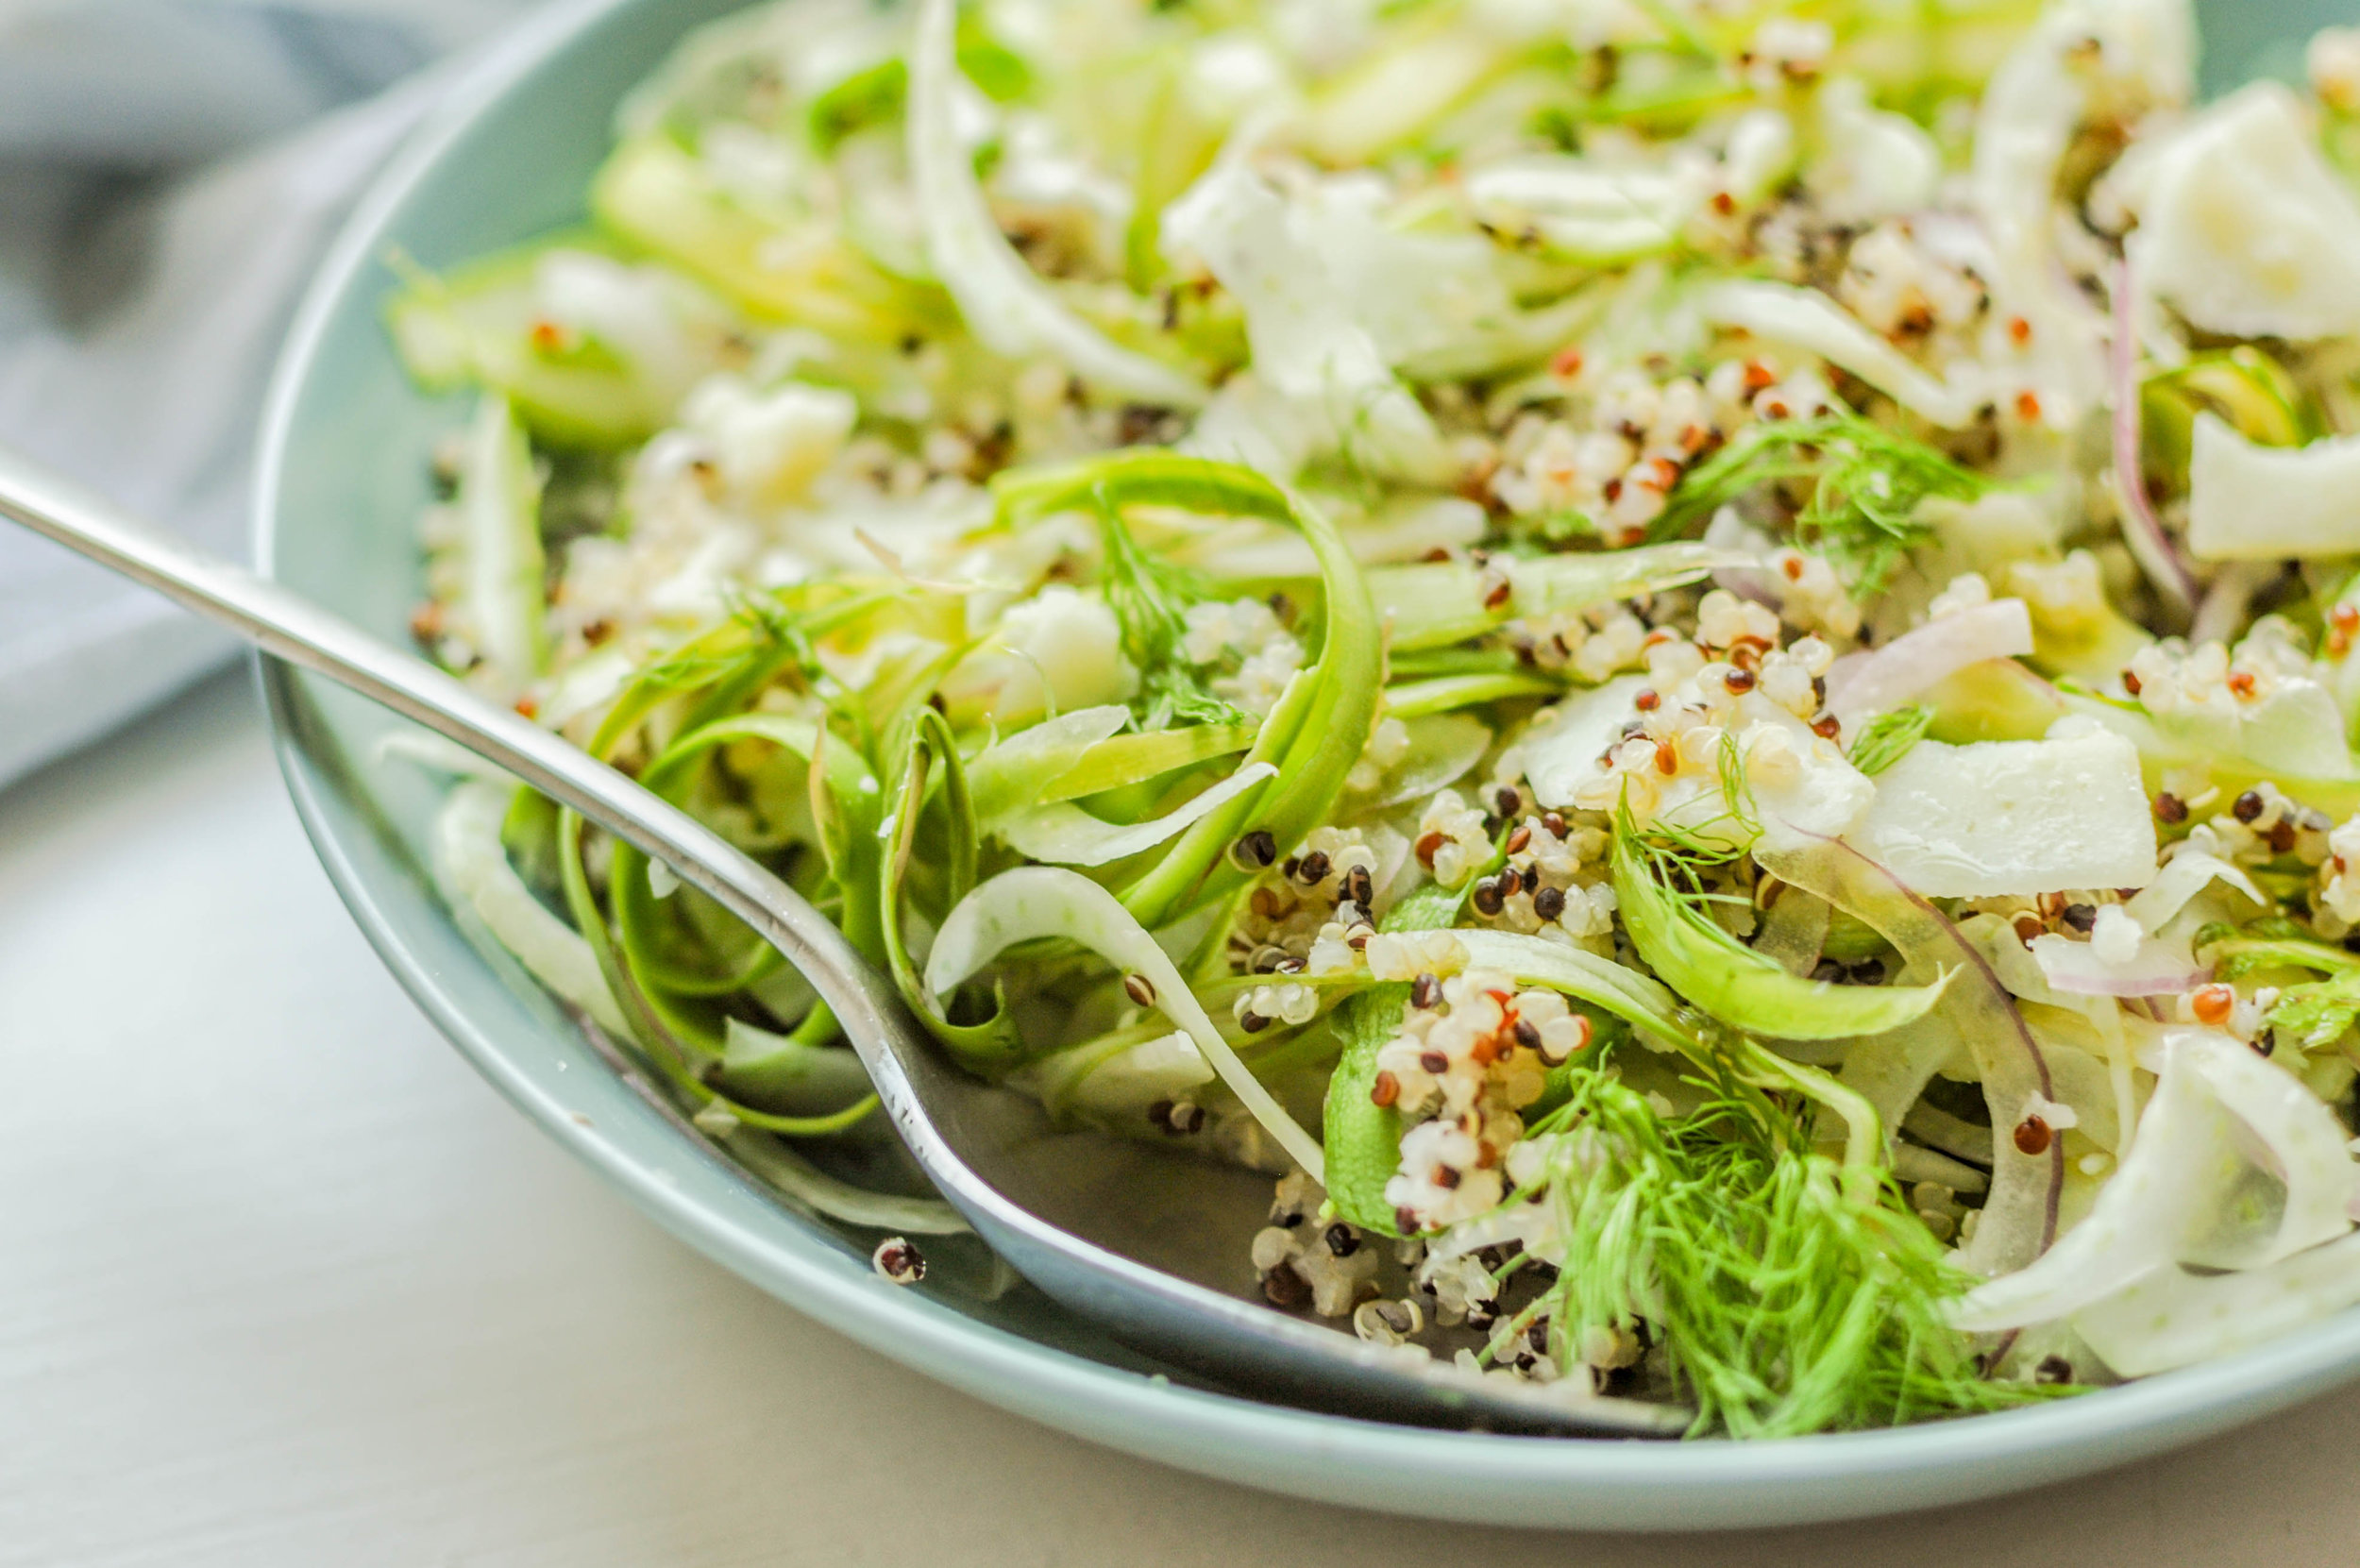 Shaved Fennel & Asparagus Quinoa Salad with Manchego and a Zesty Lemon Dressing.